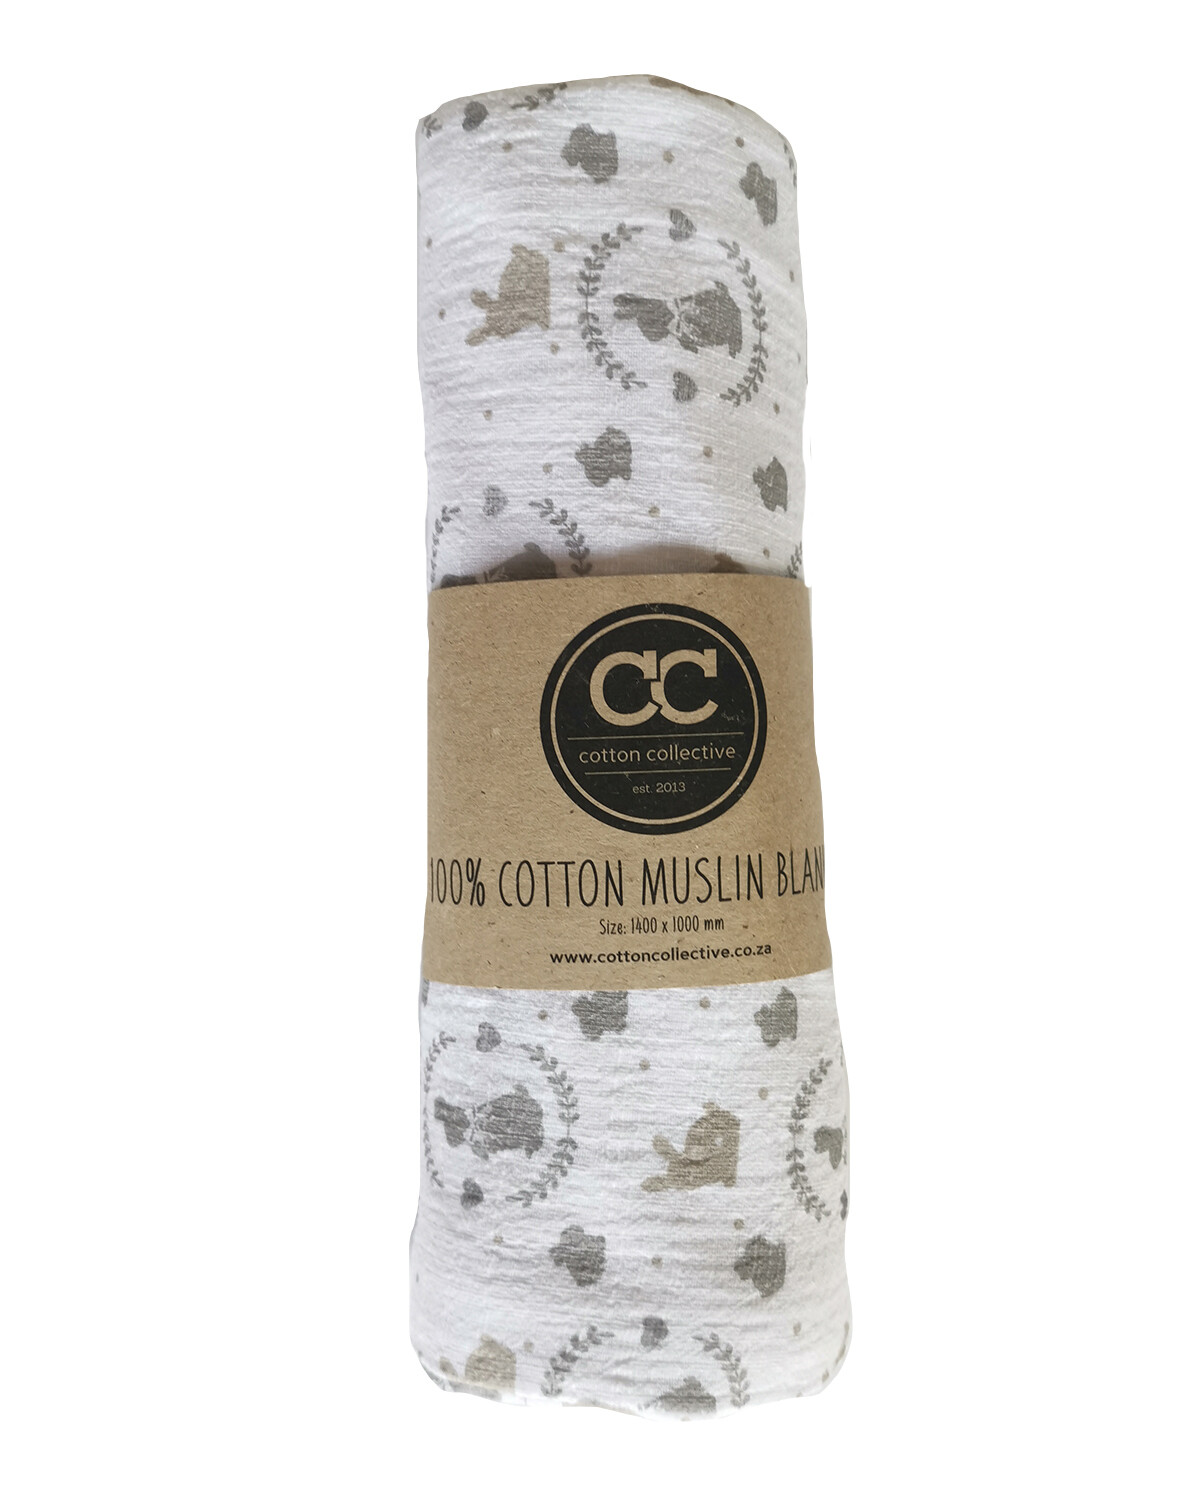 Muslin swaddle baby blankets - bunny - 100% cotton